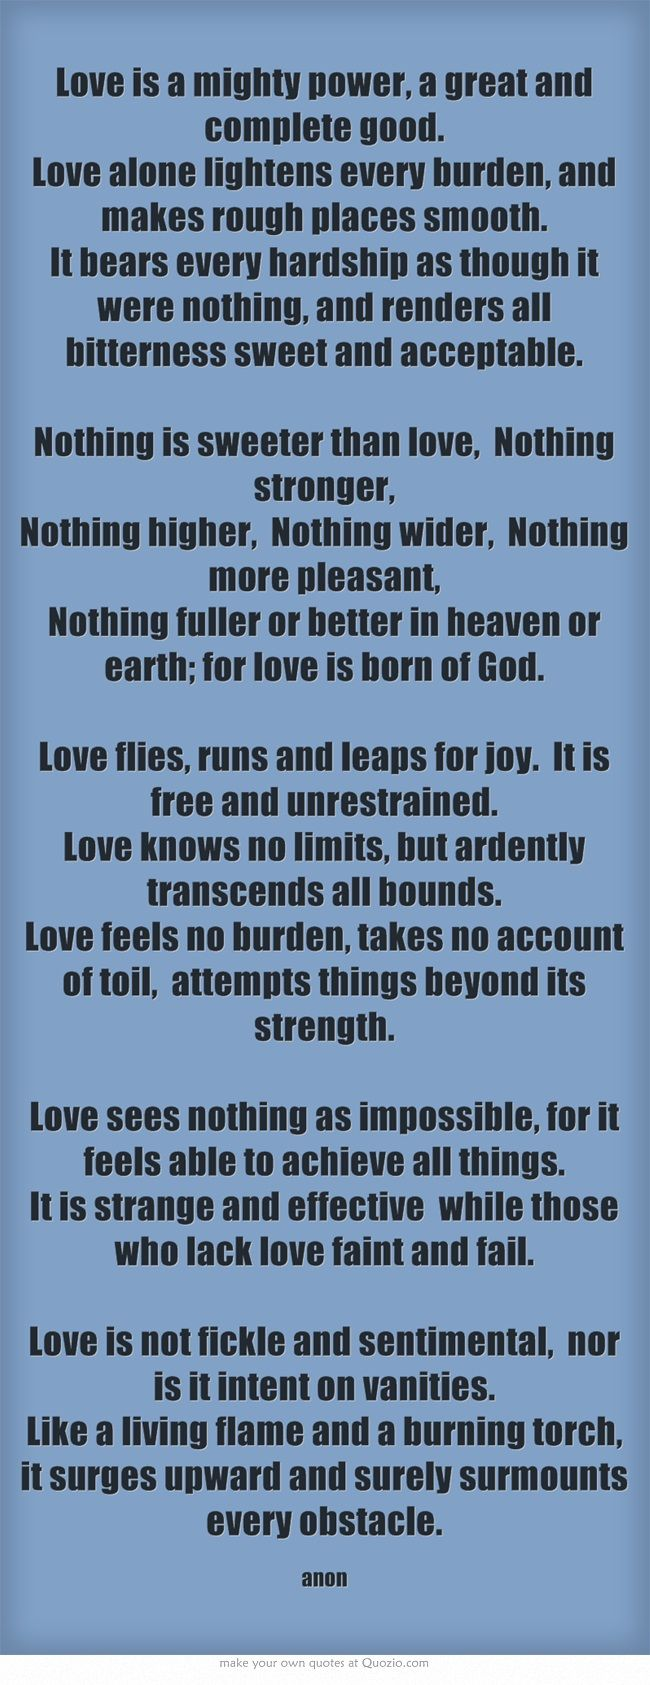 Love Is A Mighty Power This Sounds Lot Like Pauls Letter To The Corinthians